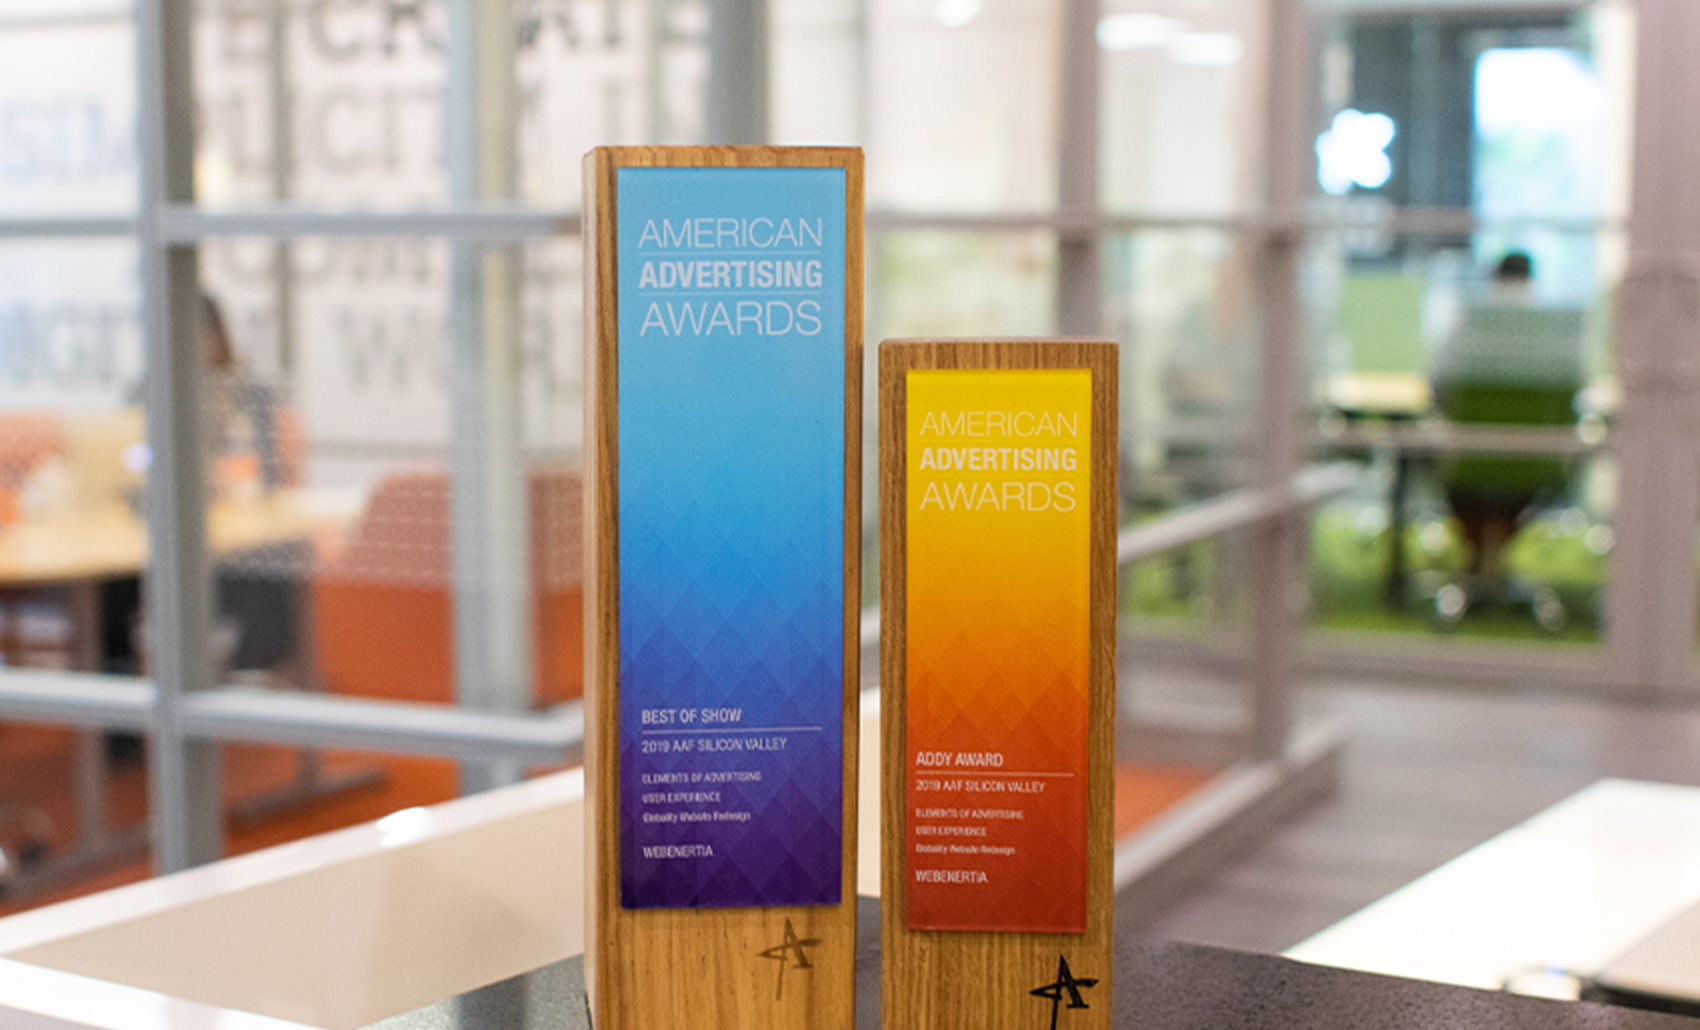 2019 Addy Awards - Best of Show Statue and Addy Award Statue